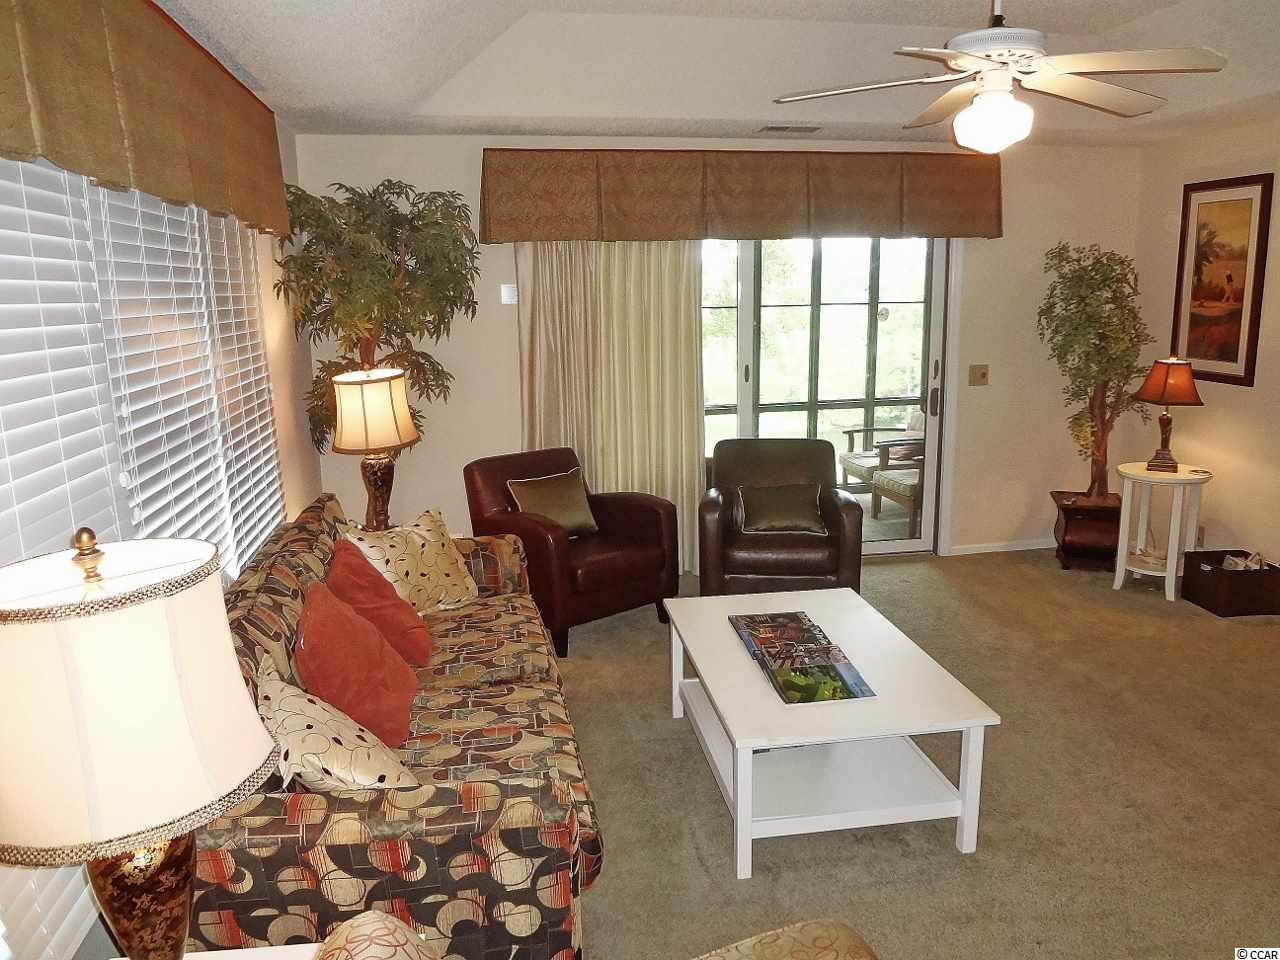 2 bedroom  Sea Trail - Sunset Beach, NC condo for sale